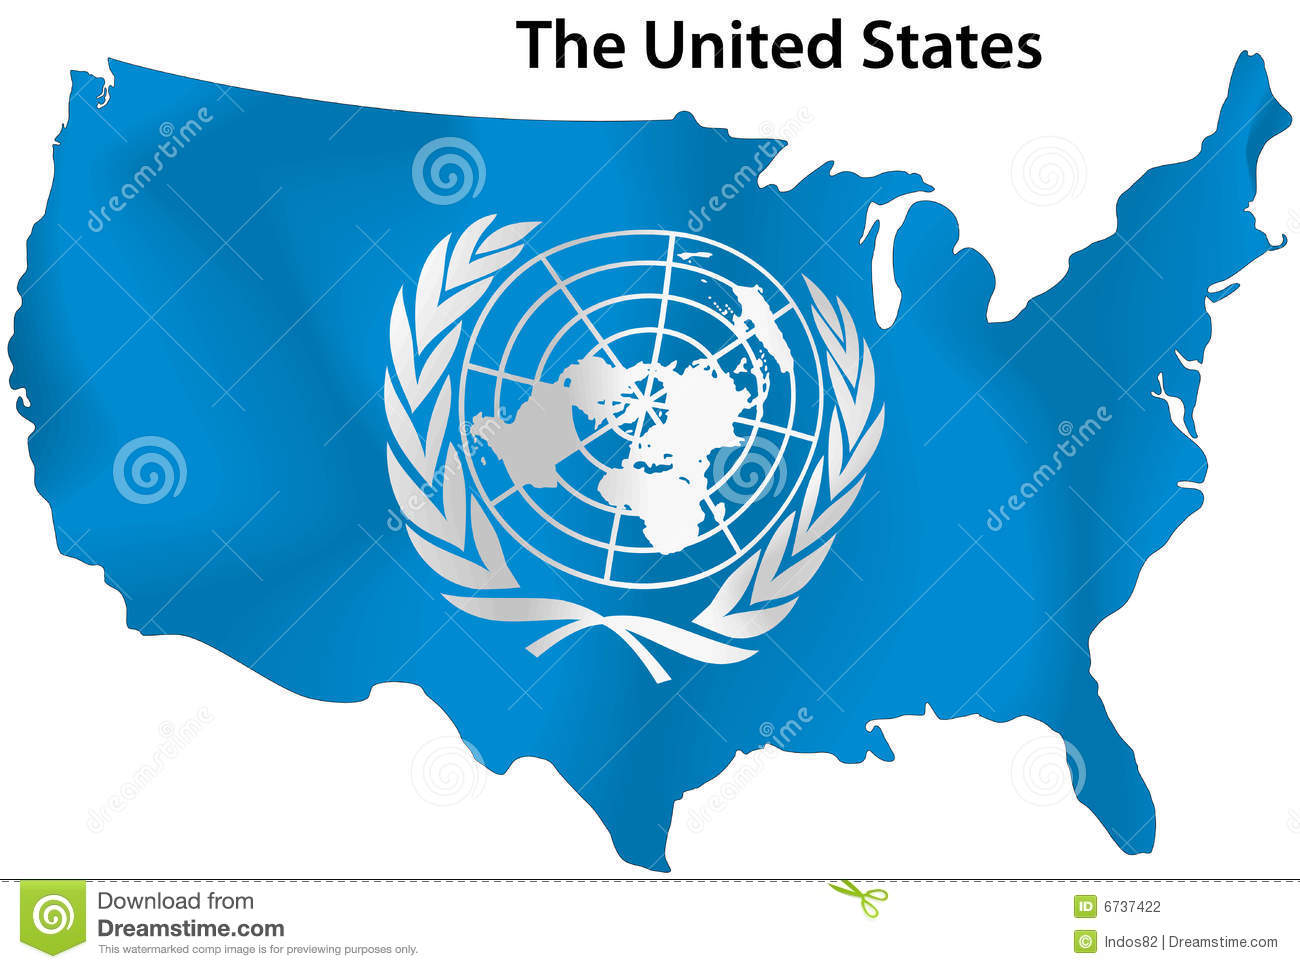 united nations and world The united nations emerged after world war ii as an international peacekeeping organization the united nations (un) was created at the end of world war ii as an.